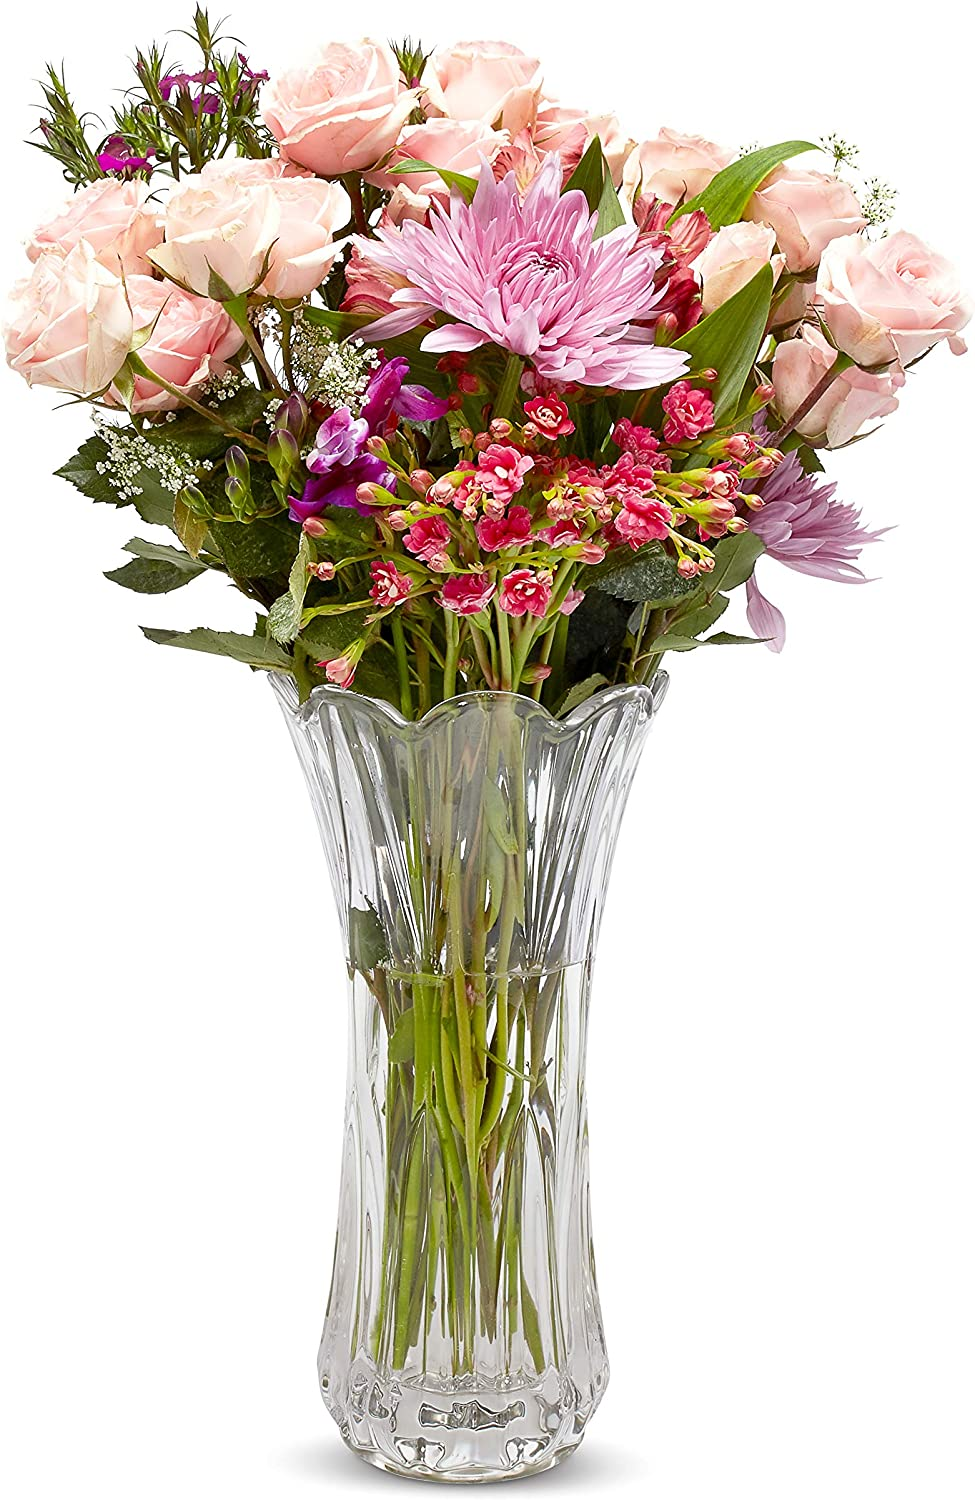 "Crystal Flower Vase, Tall Glass Bouquet Holder, Glass Vases For Decor, Clear Flower Vase for Floral Arrangements, Centerpieces, Weddings, Housewarming, Kitchen & Home 11.25"" x 4"" -Flowers Not Included"